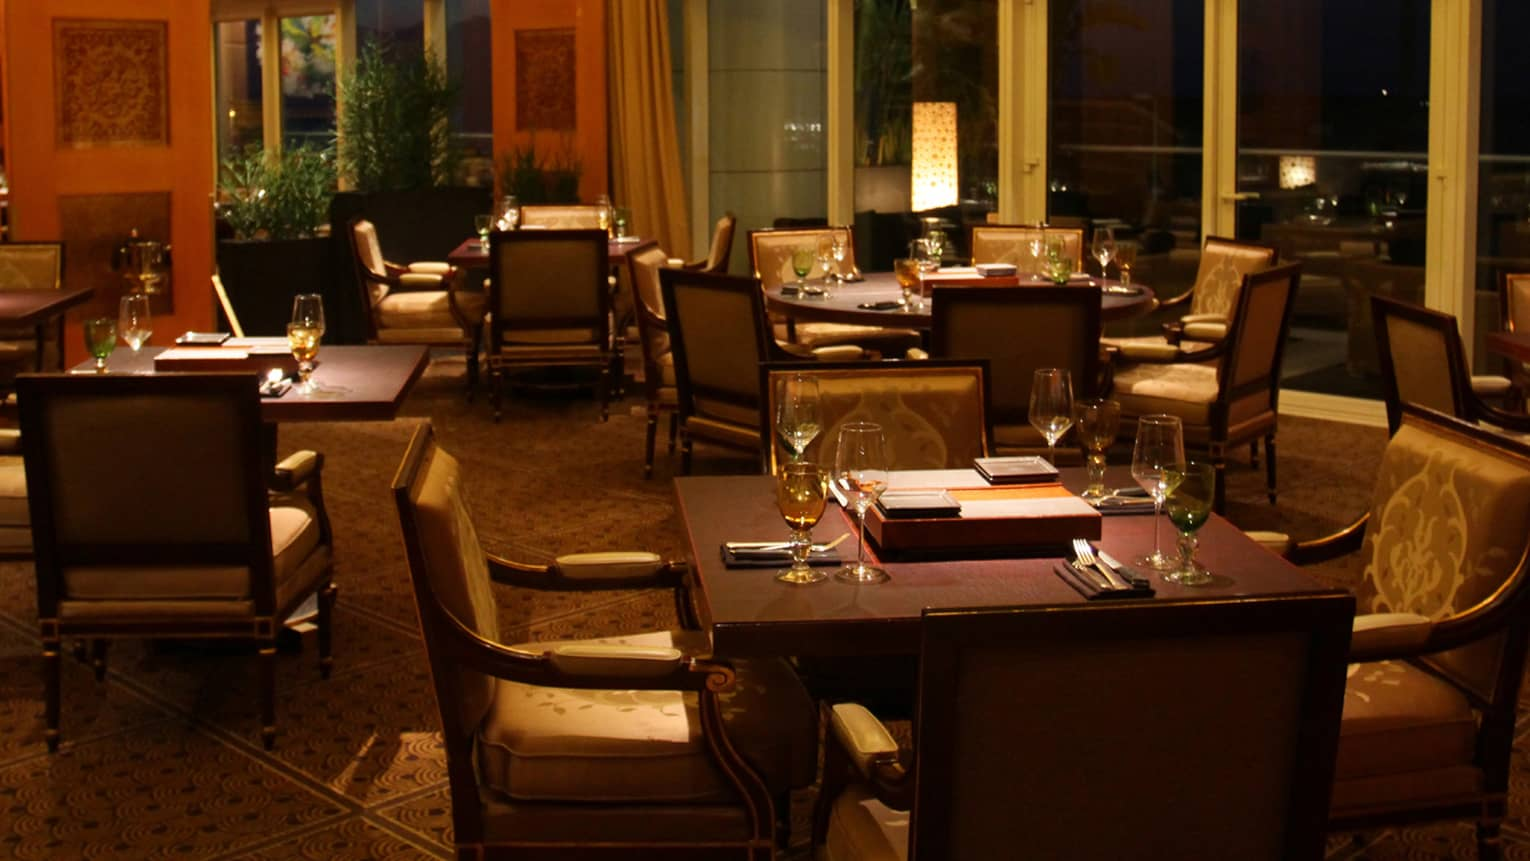 Dimly lit dining room of restaurant, brown square tables, each with four arm chairs, windows